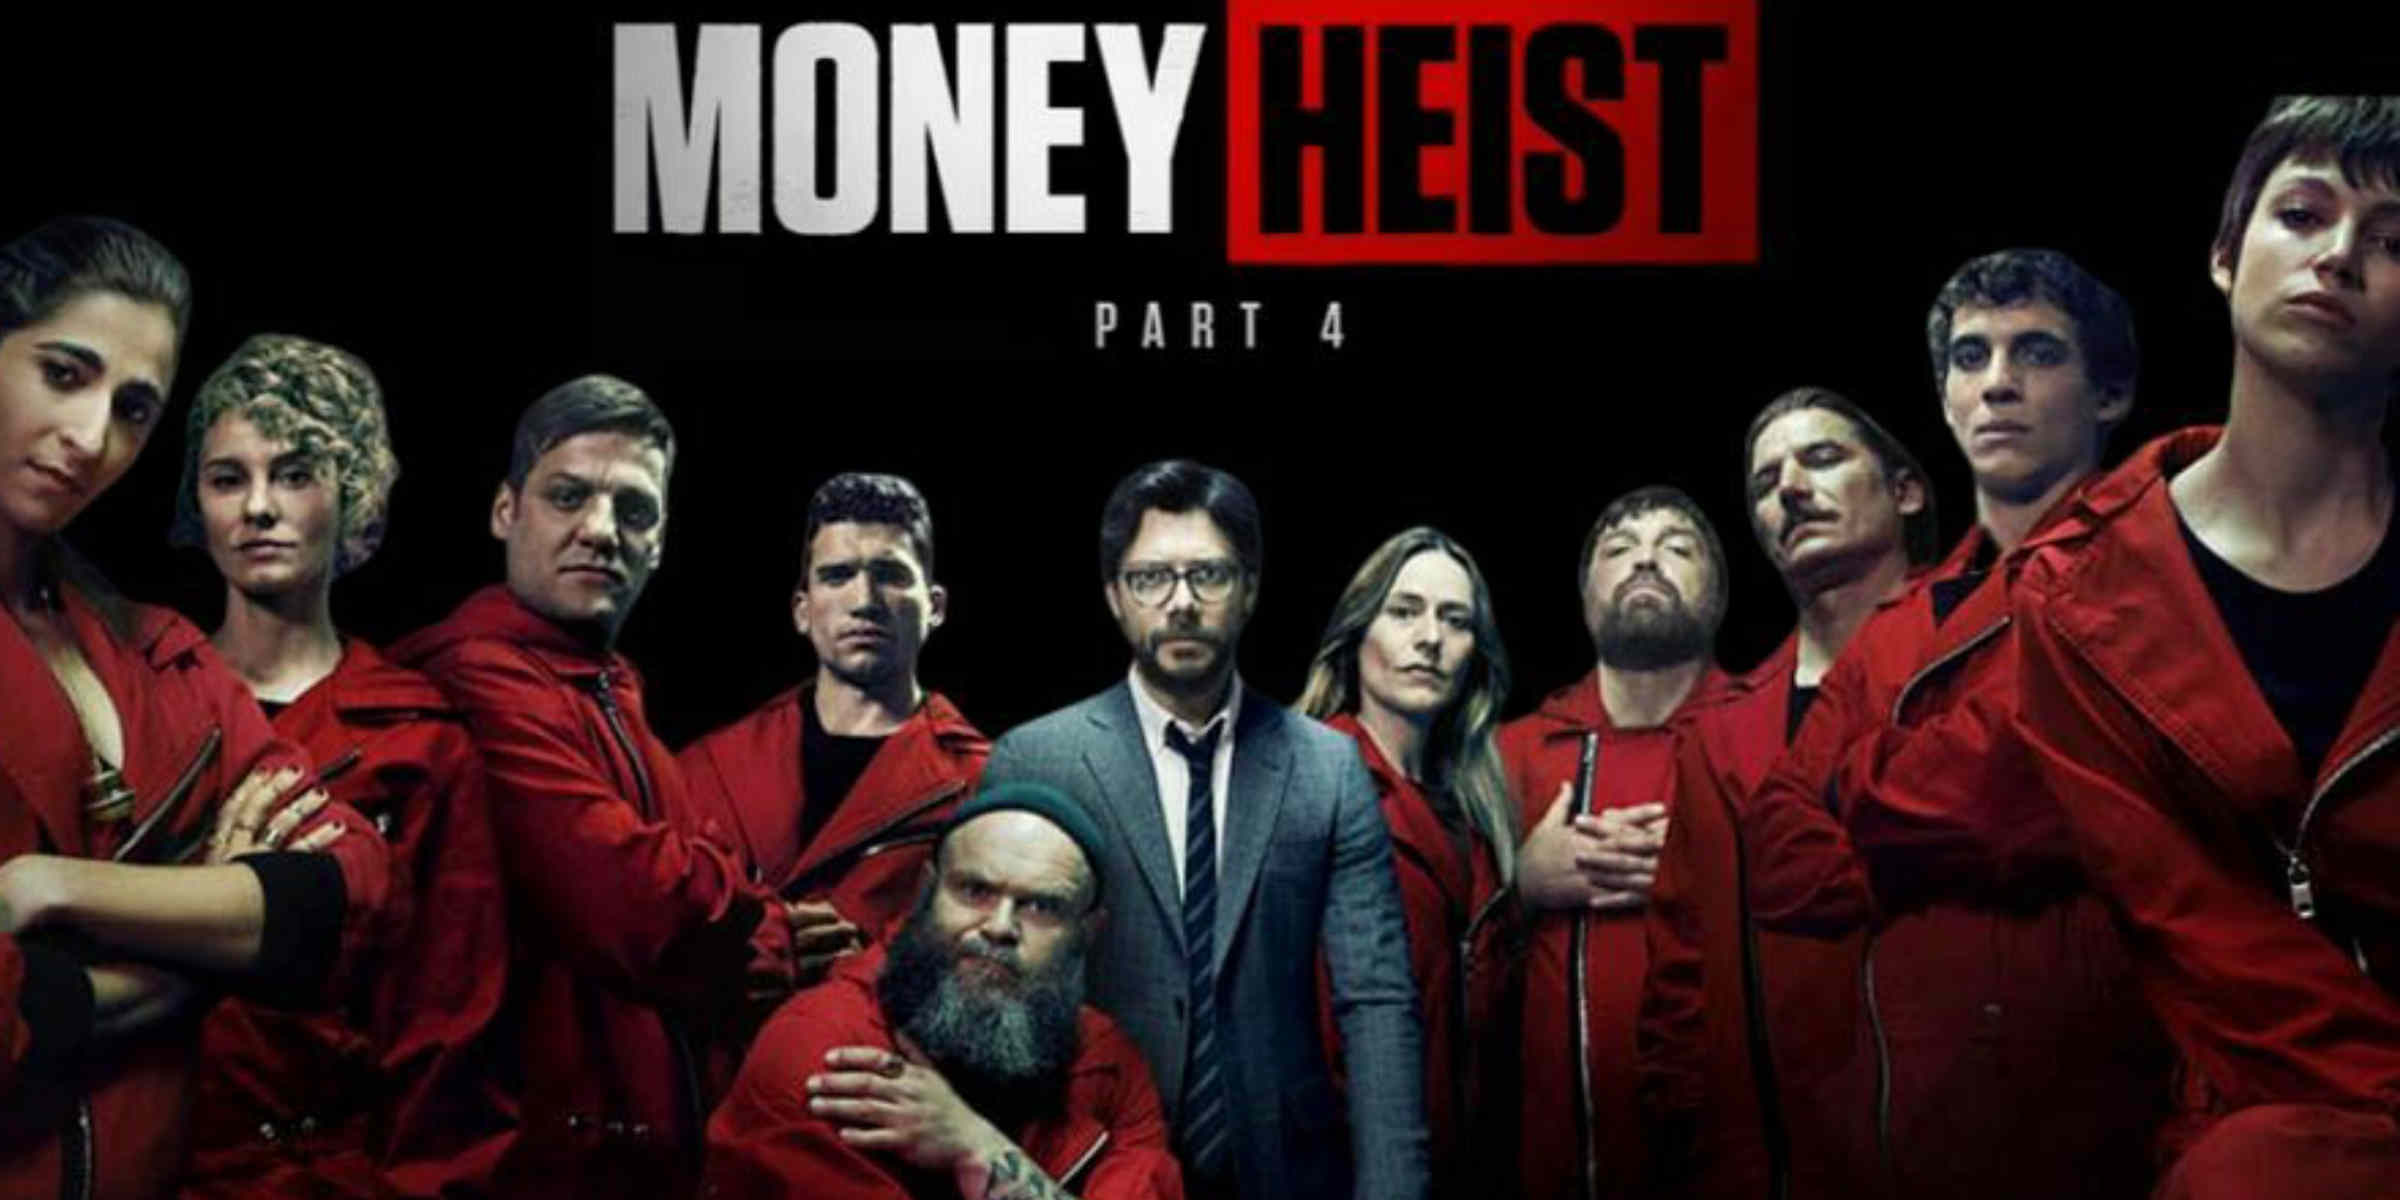 Money Heist Series Facts In Hindi